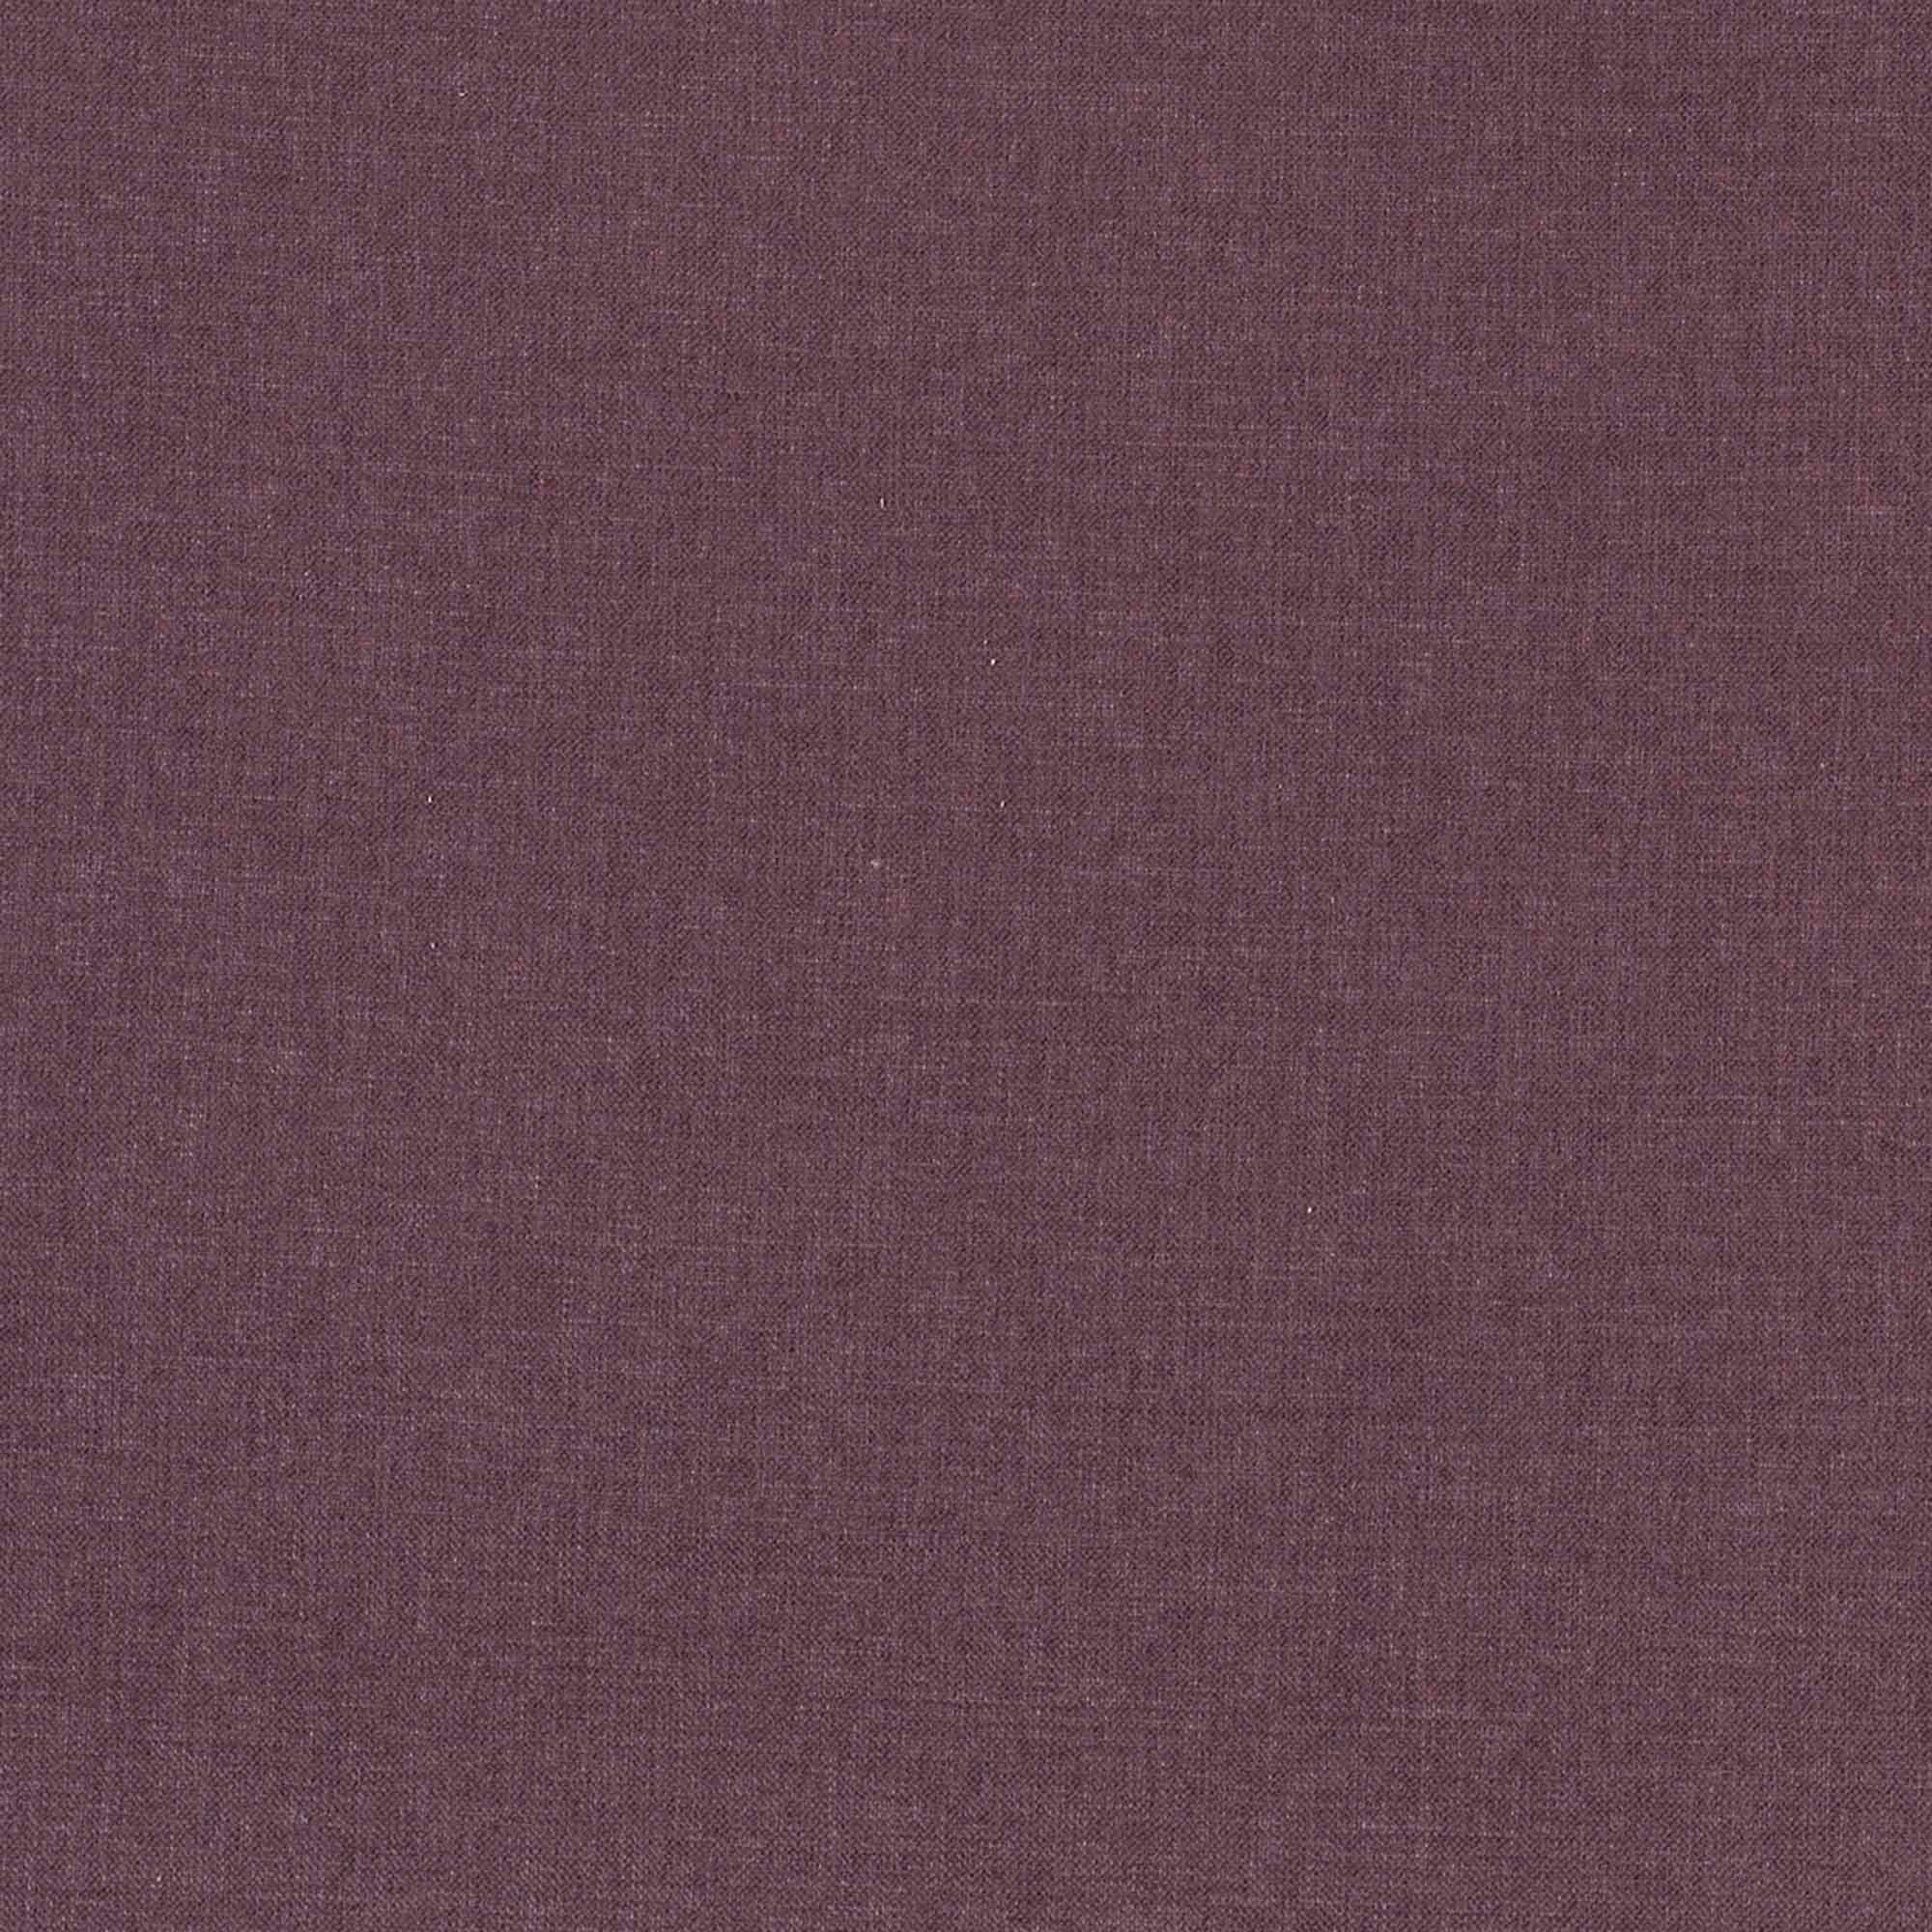 Livorno Fabric Sample